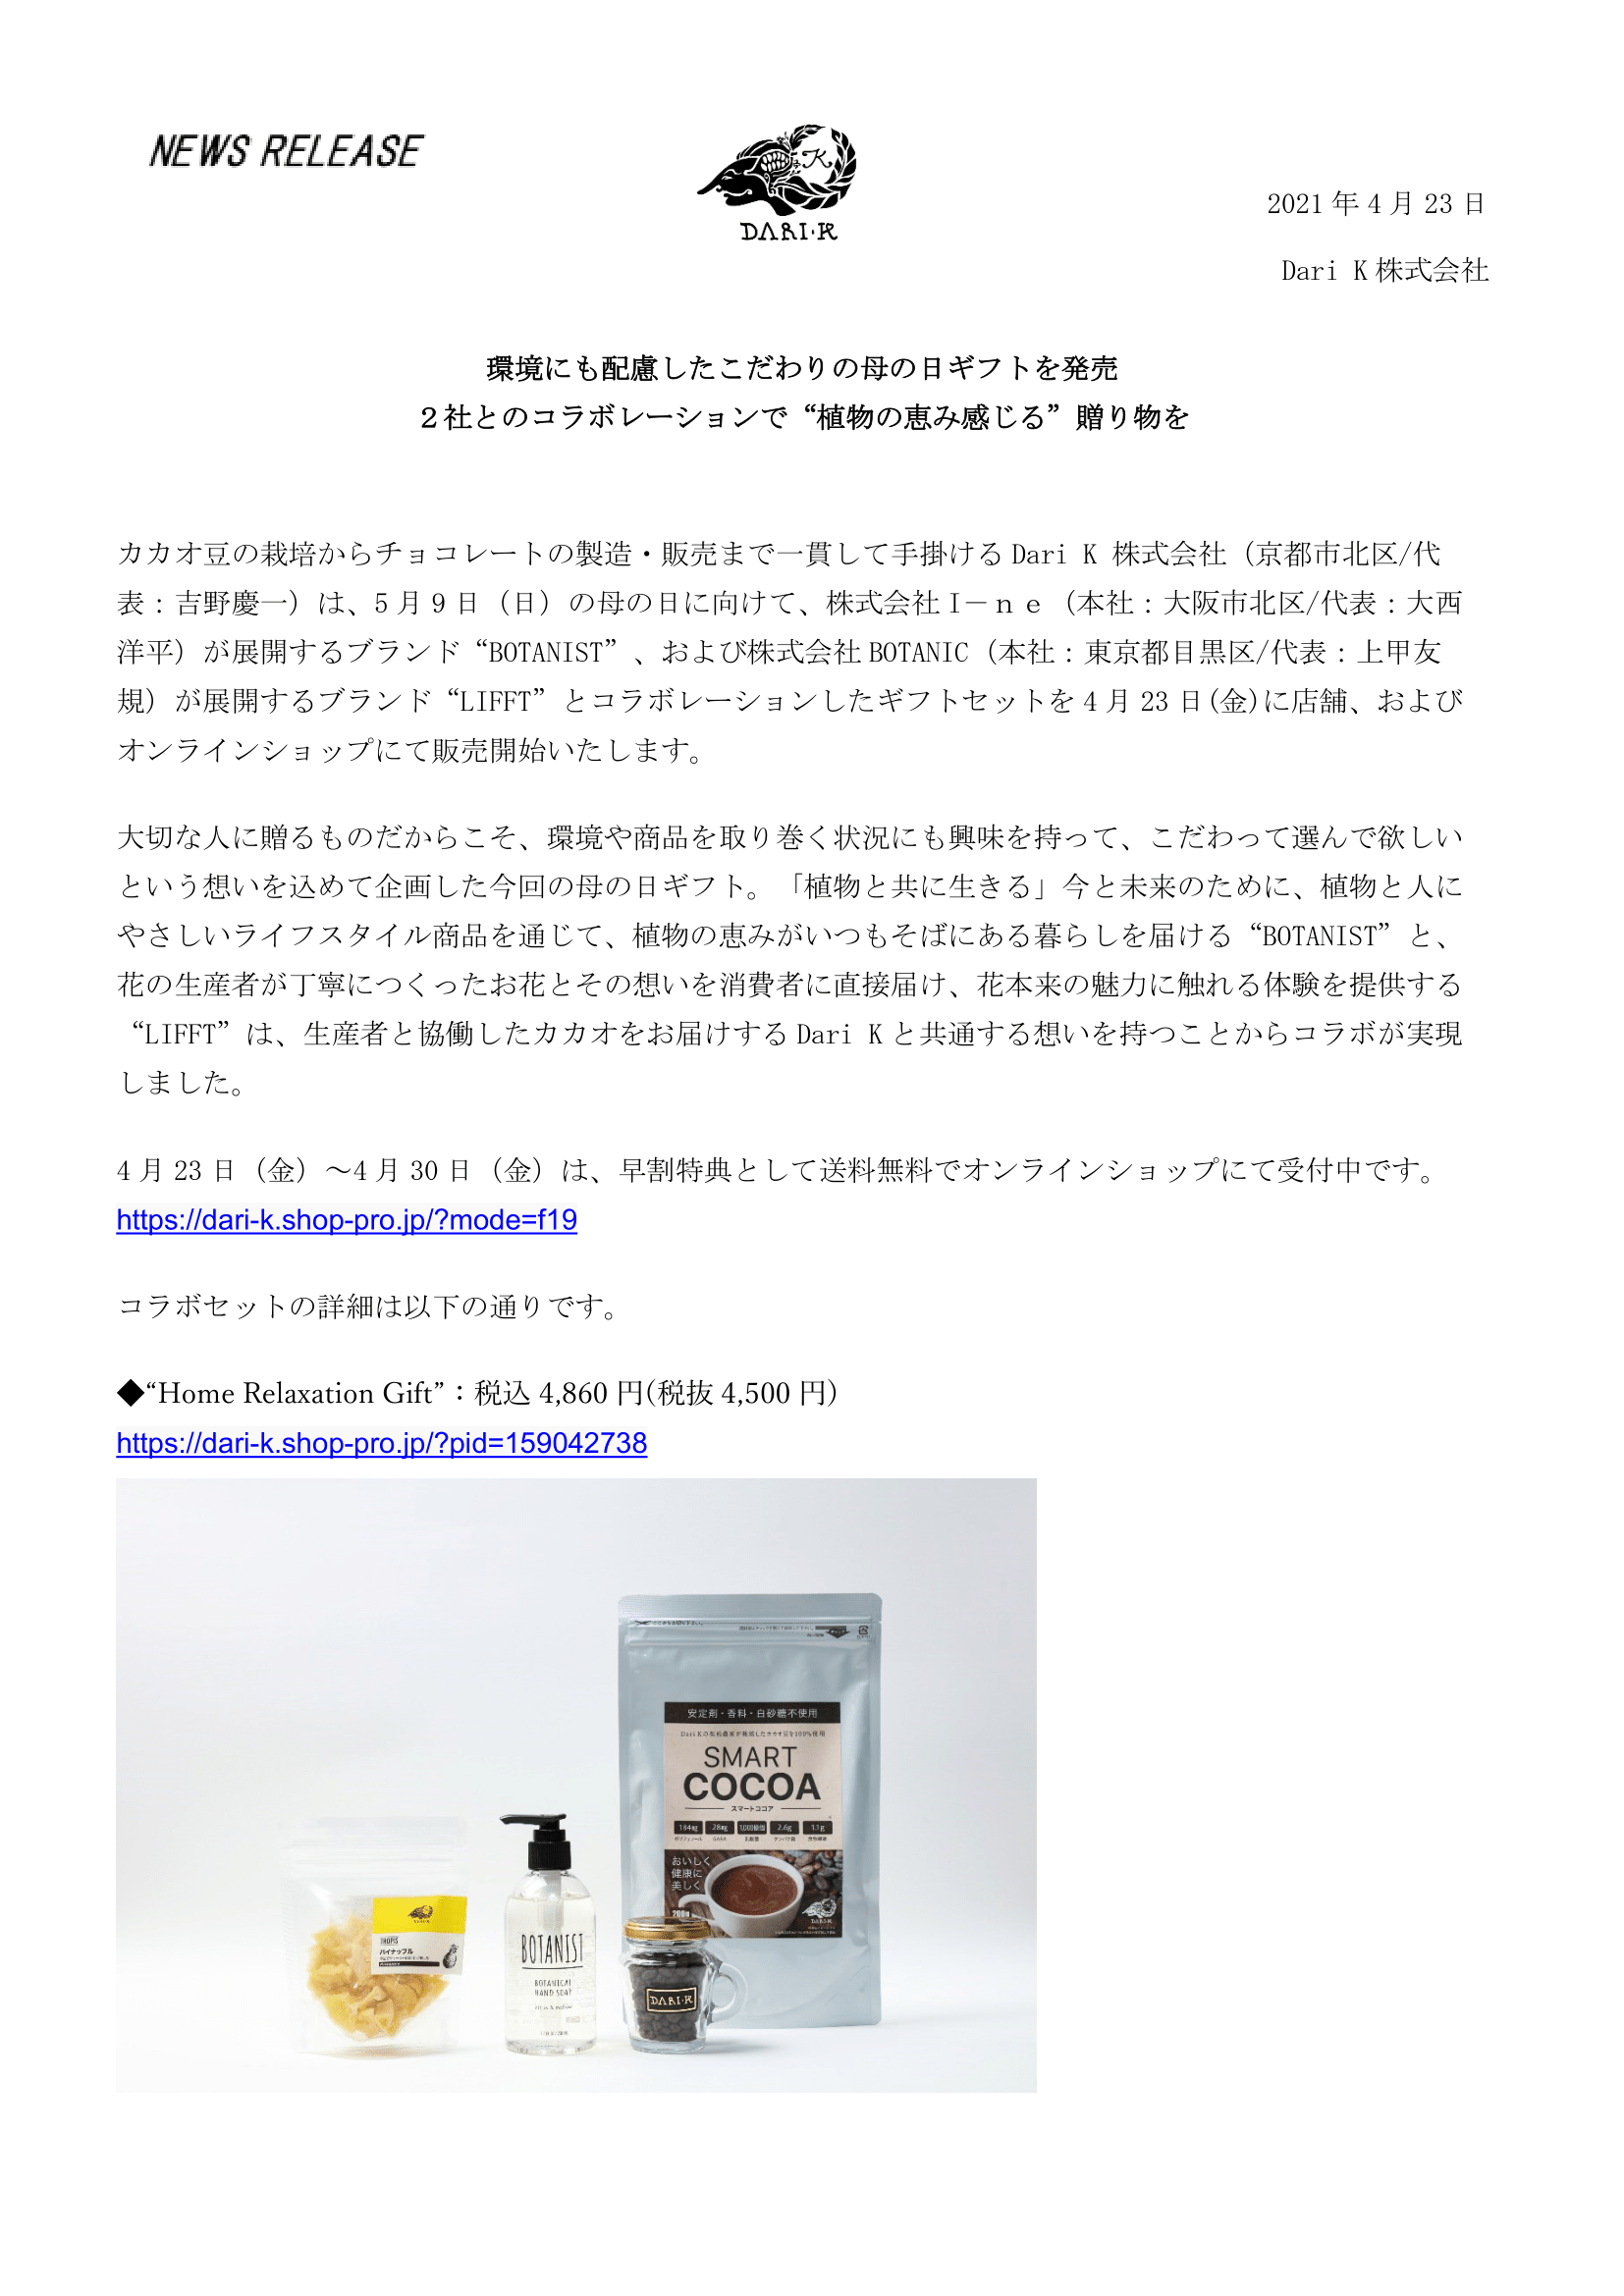 Press Release210423-母の日コラボギフト-1